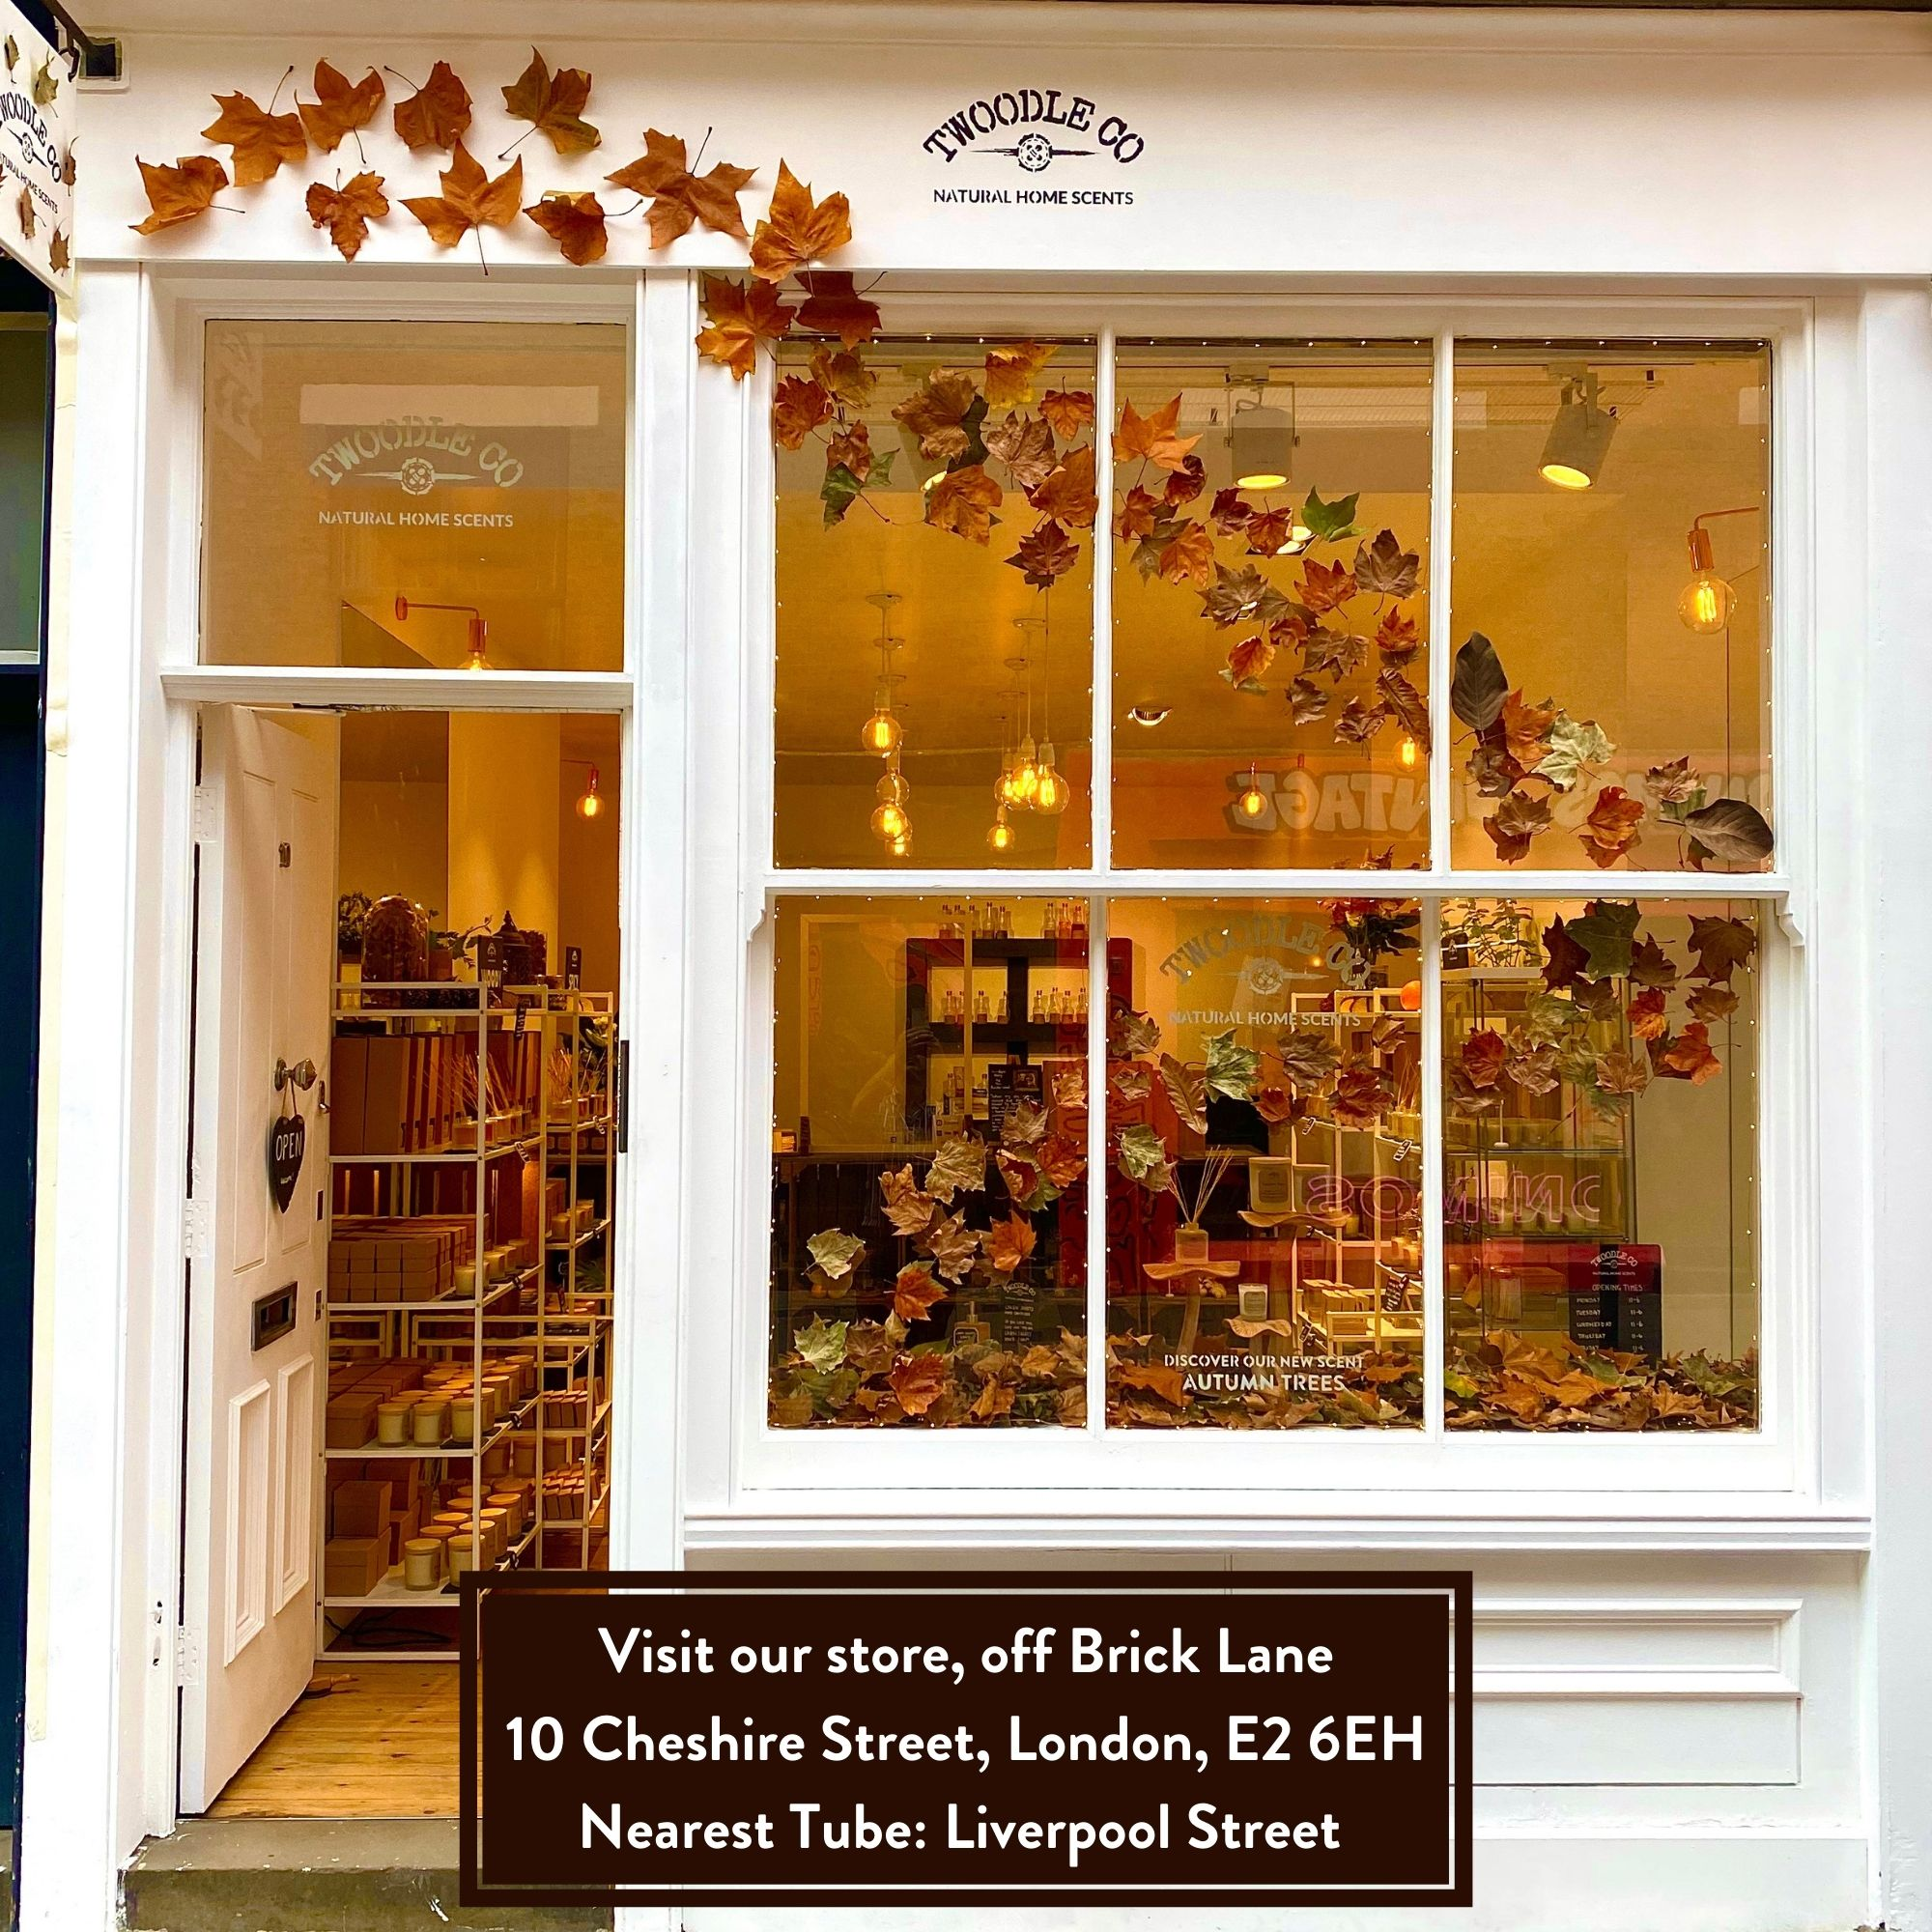 Visit our London store twoodle co natural home scents 1